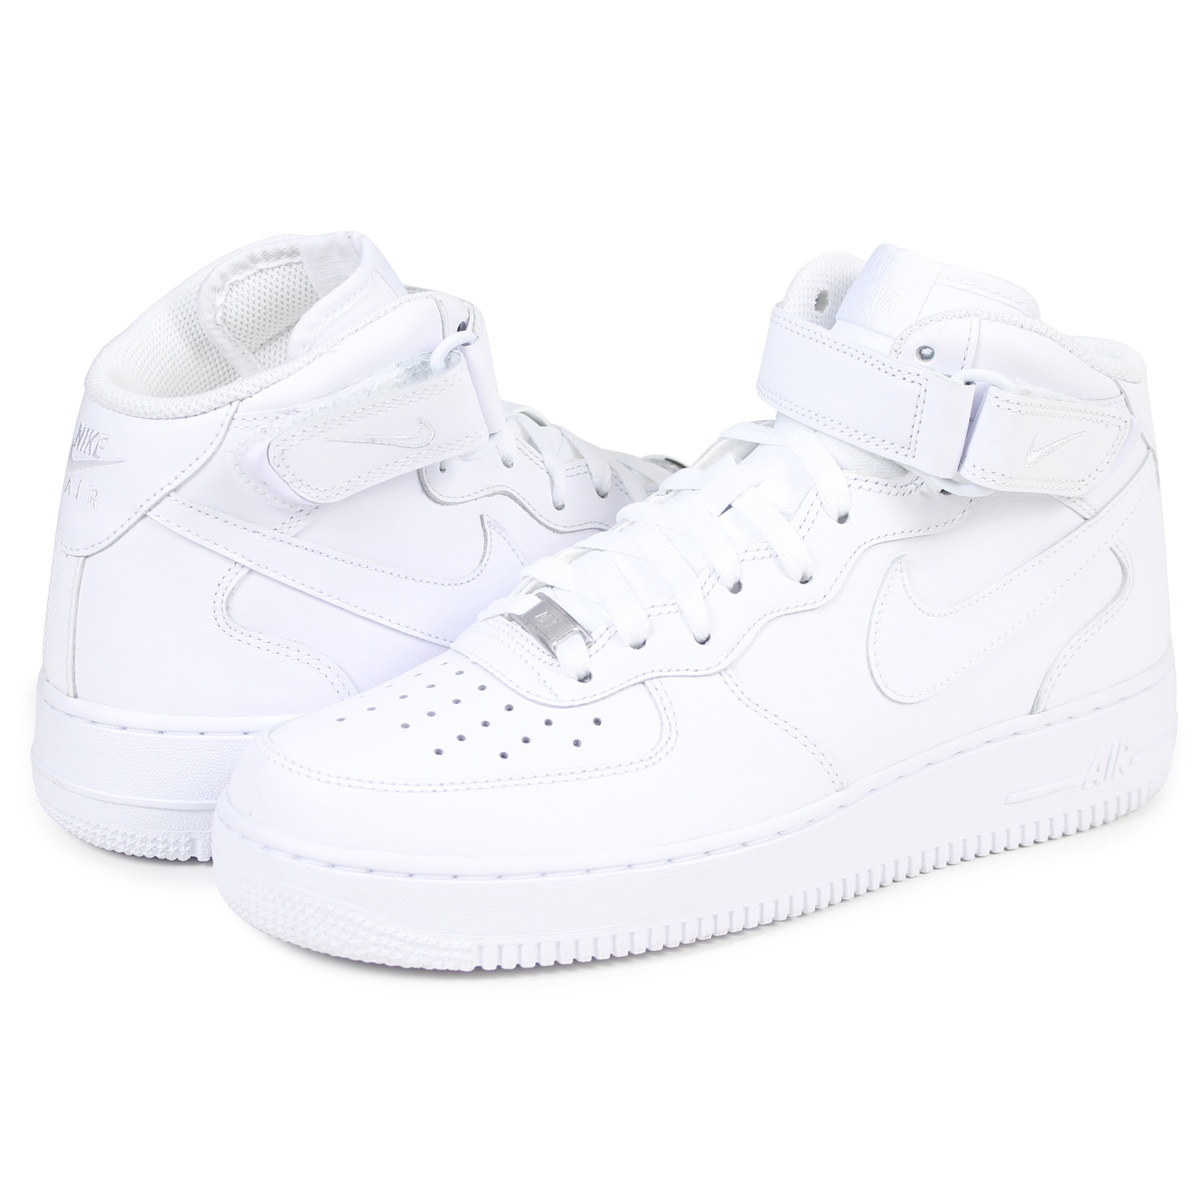 Nike NIKE air force 1 sneakers men AIR FORCE 1 MID 07 315,123 111 white white